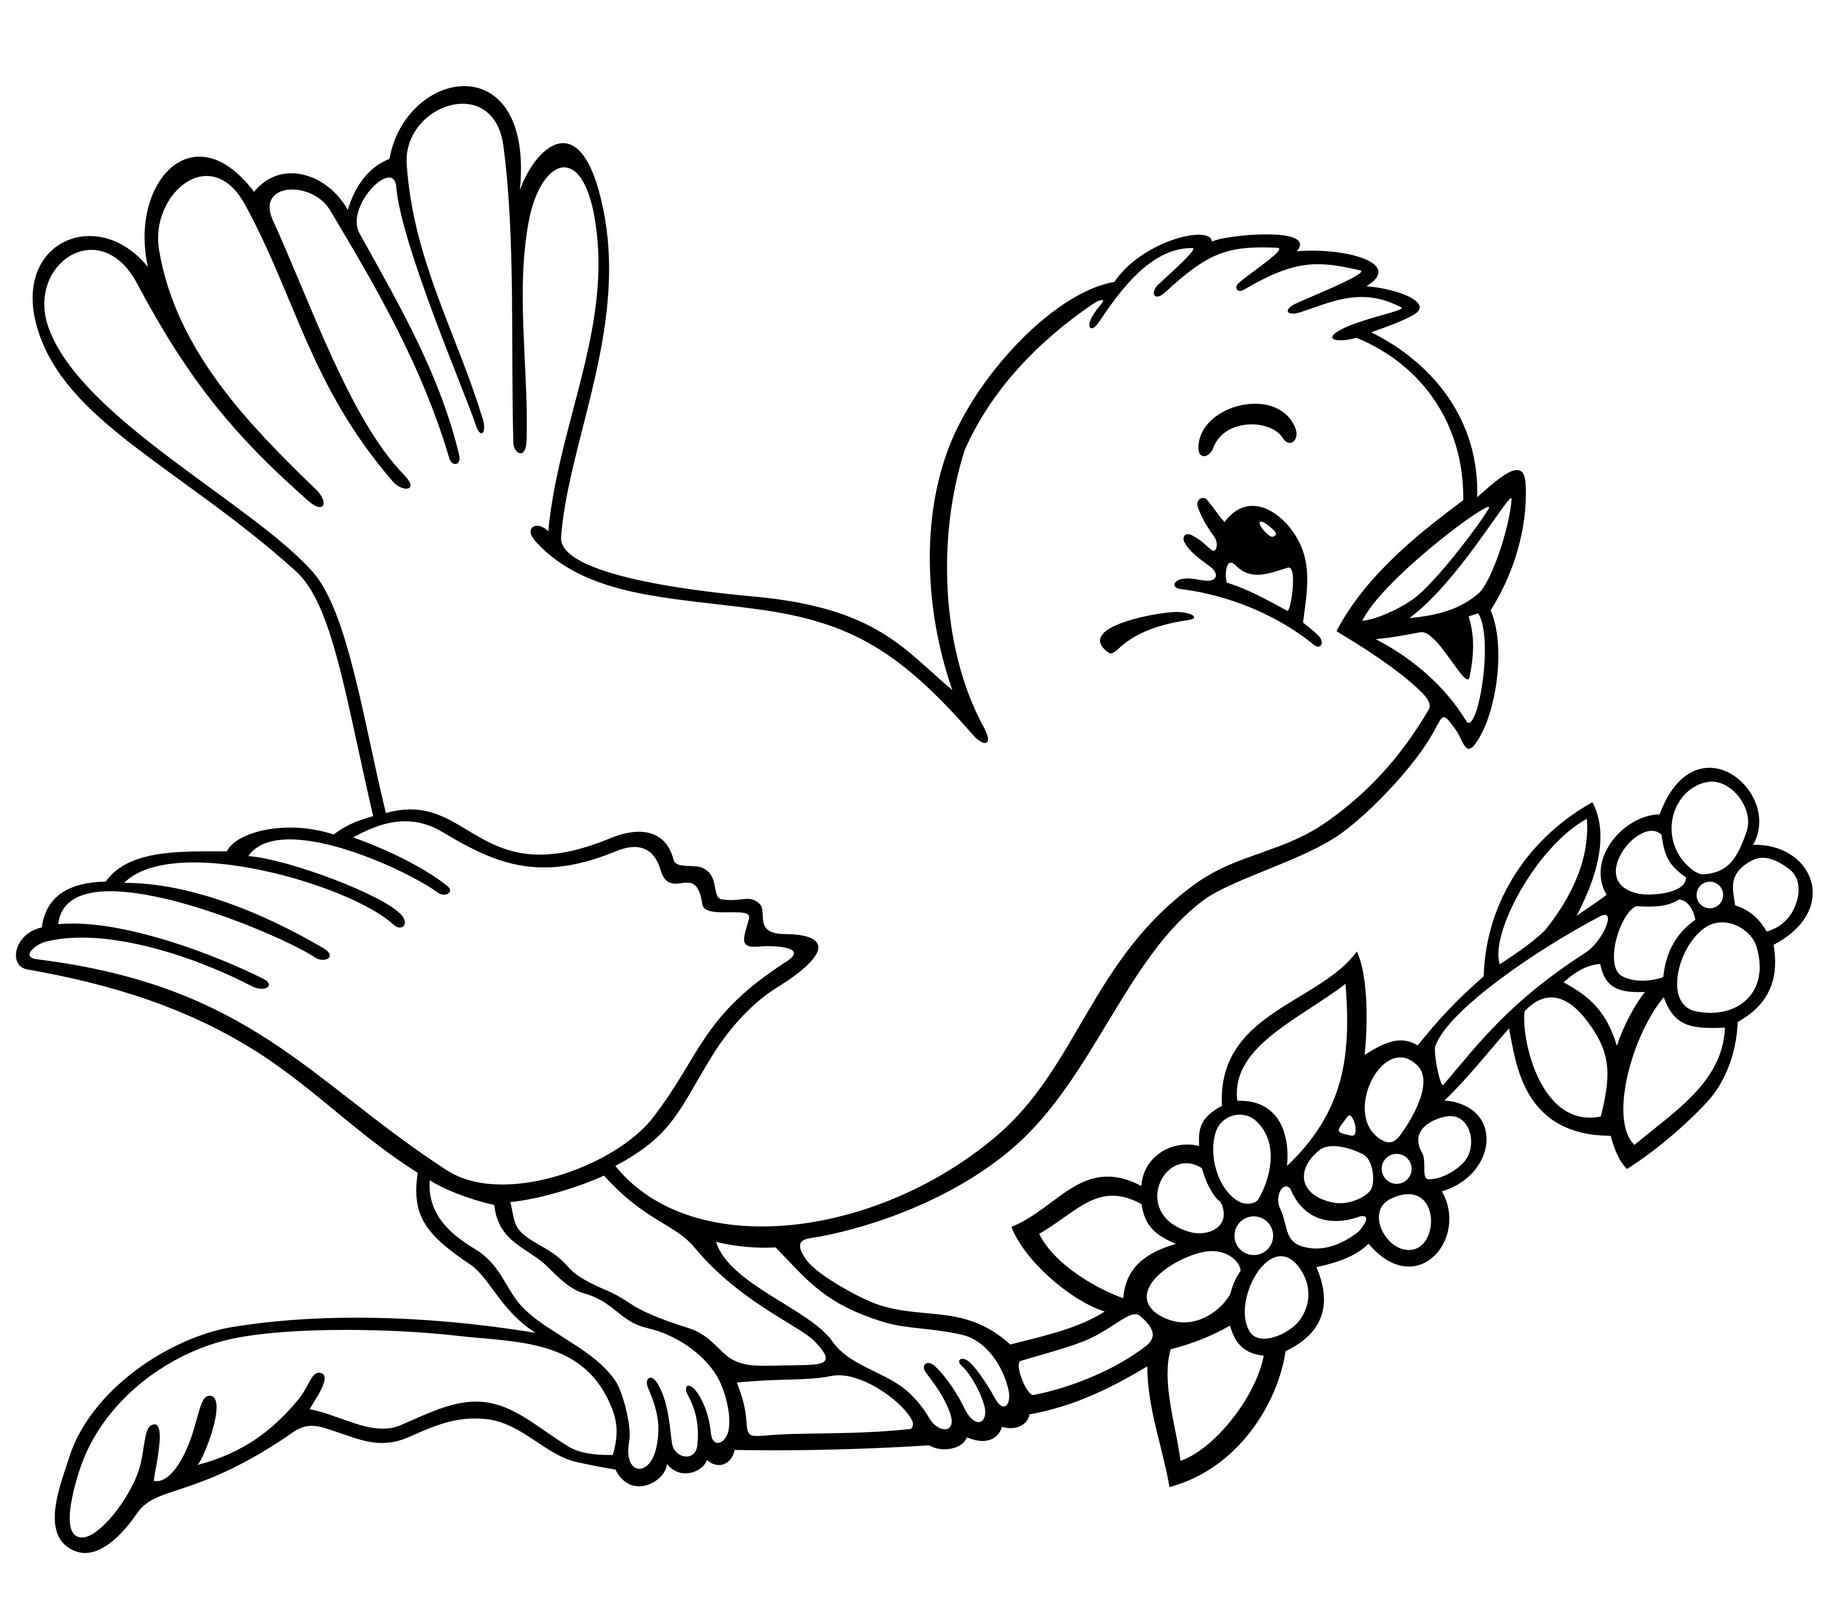 bird colouring pictures bird coloring pages pictures colouring bird 1 1